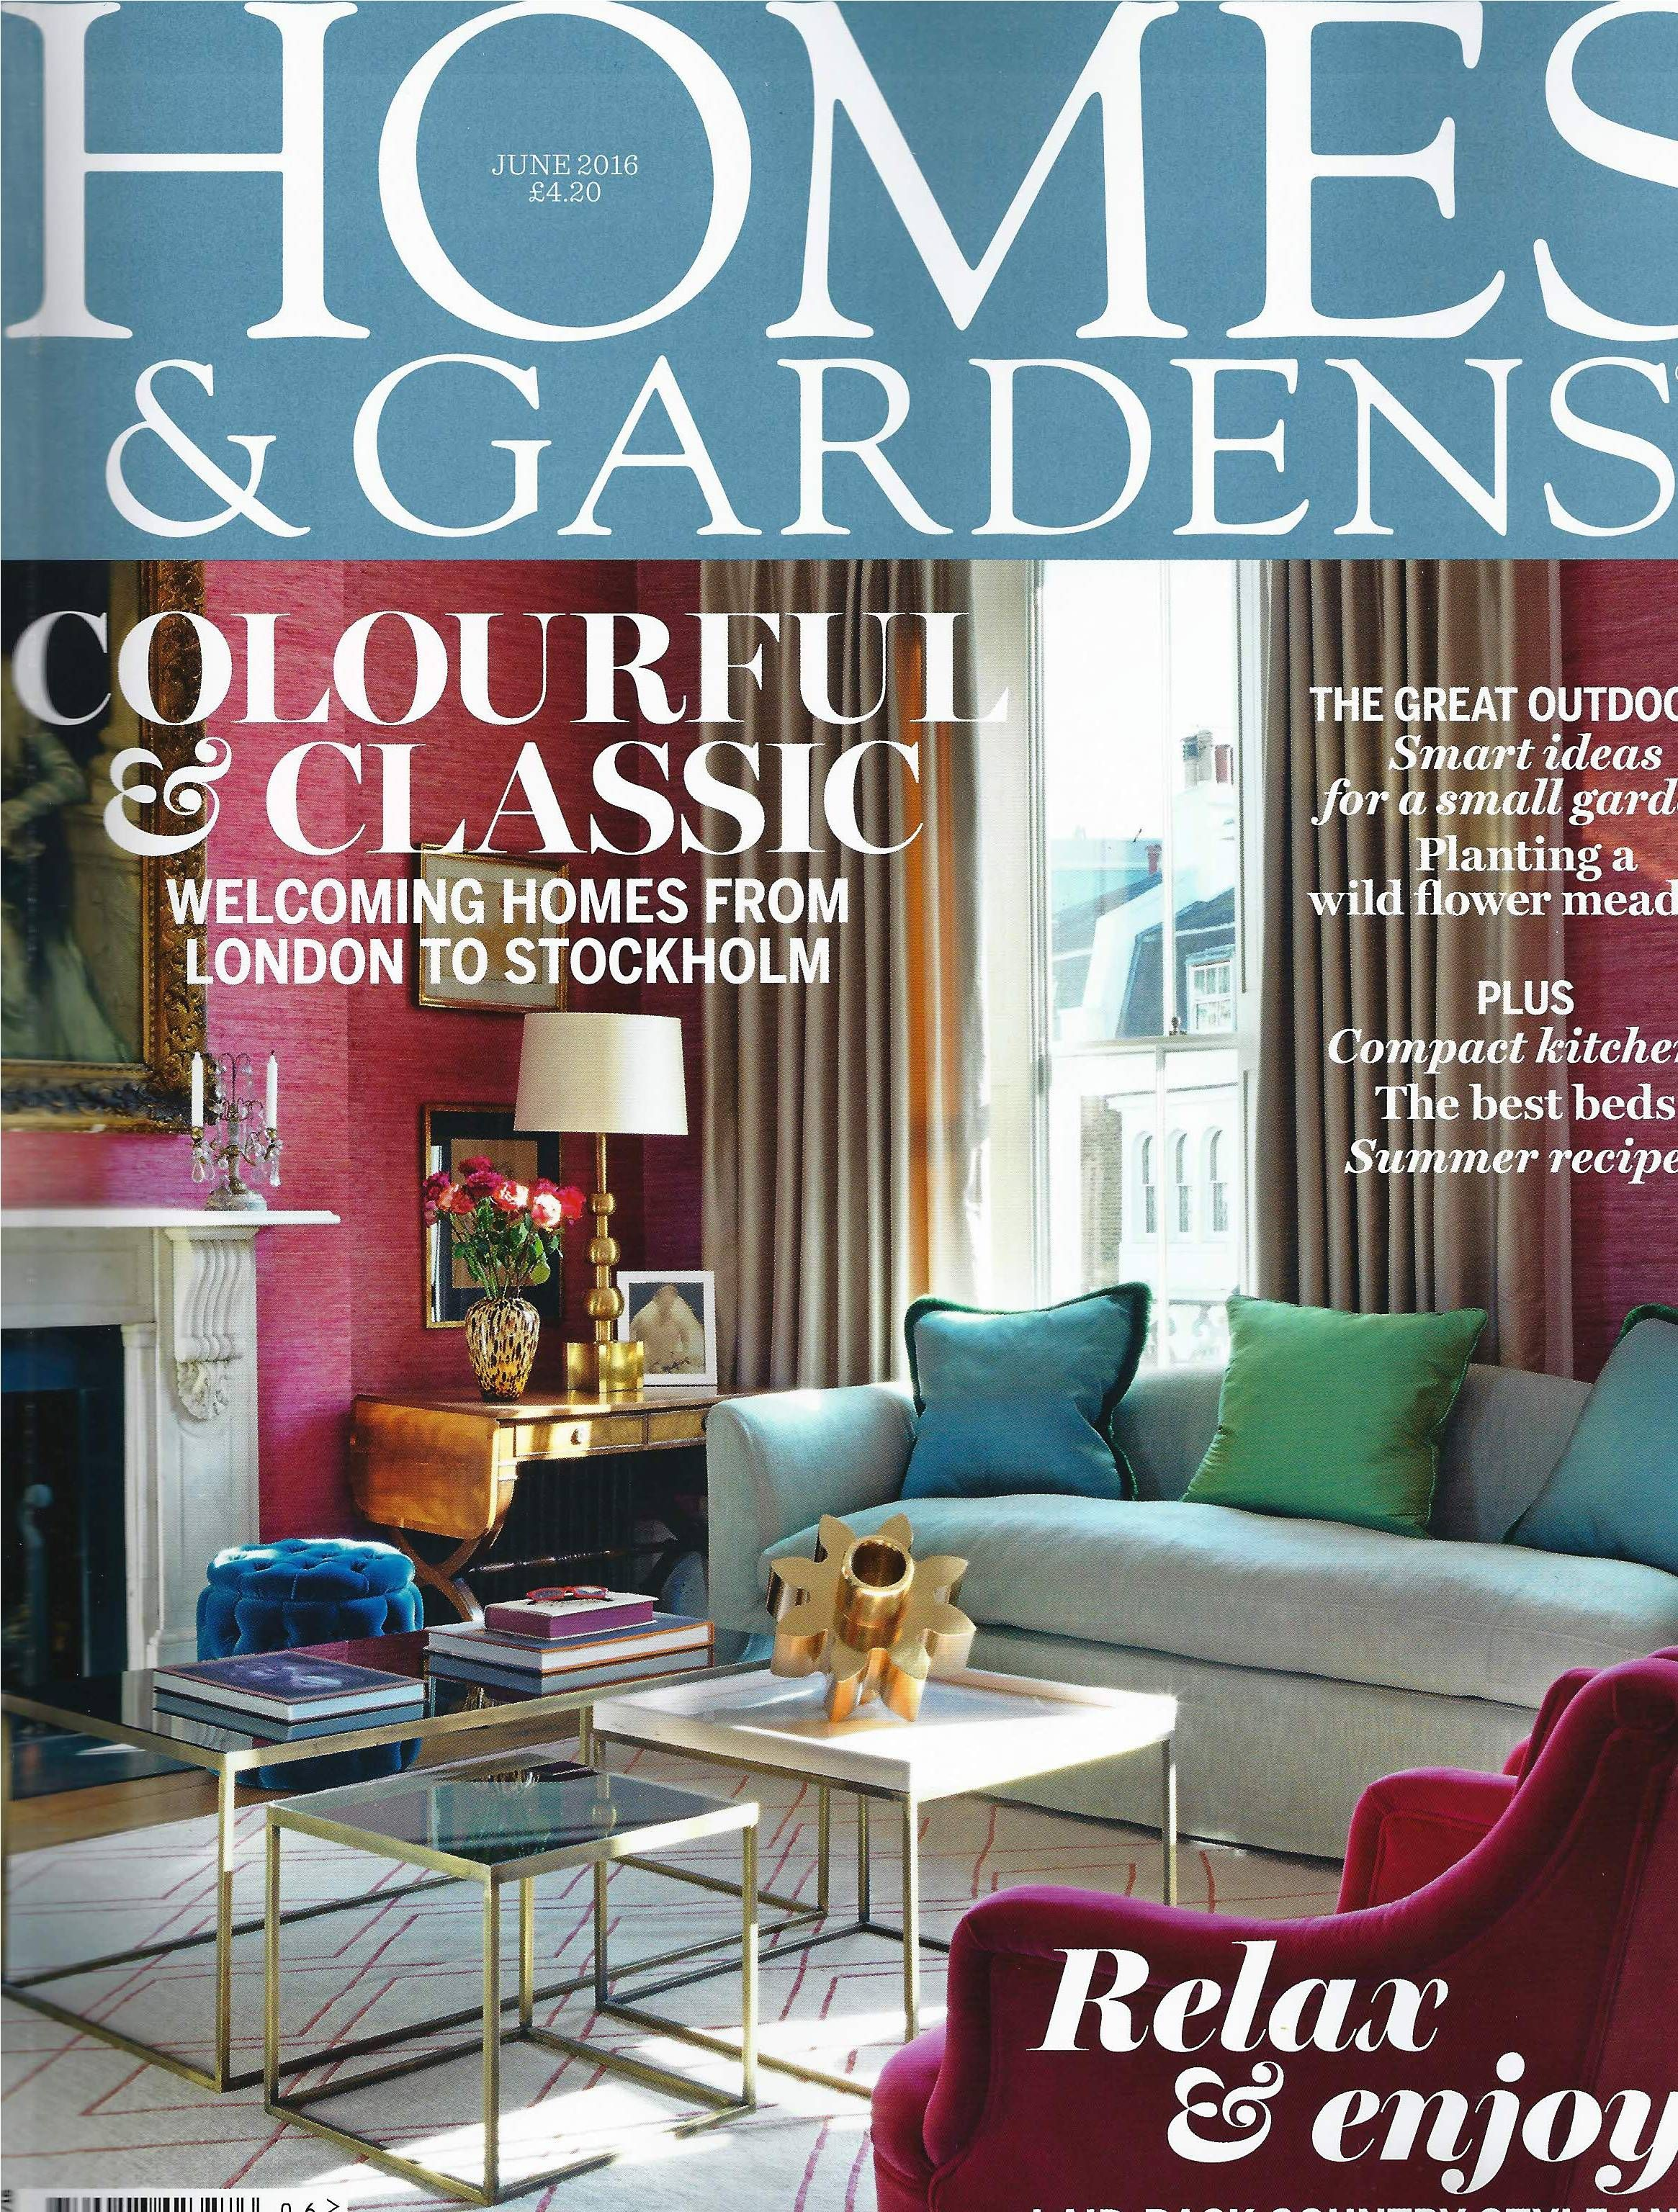 The Hardwick Table Lamp lands June's Homes & Gardens cover